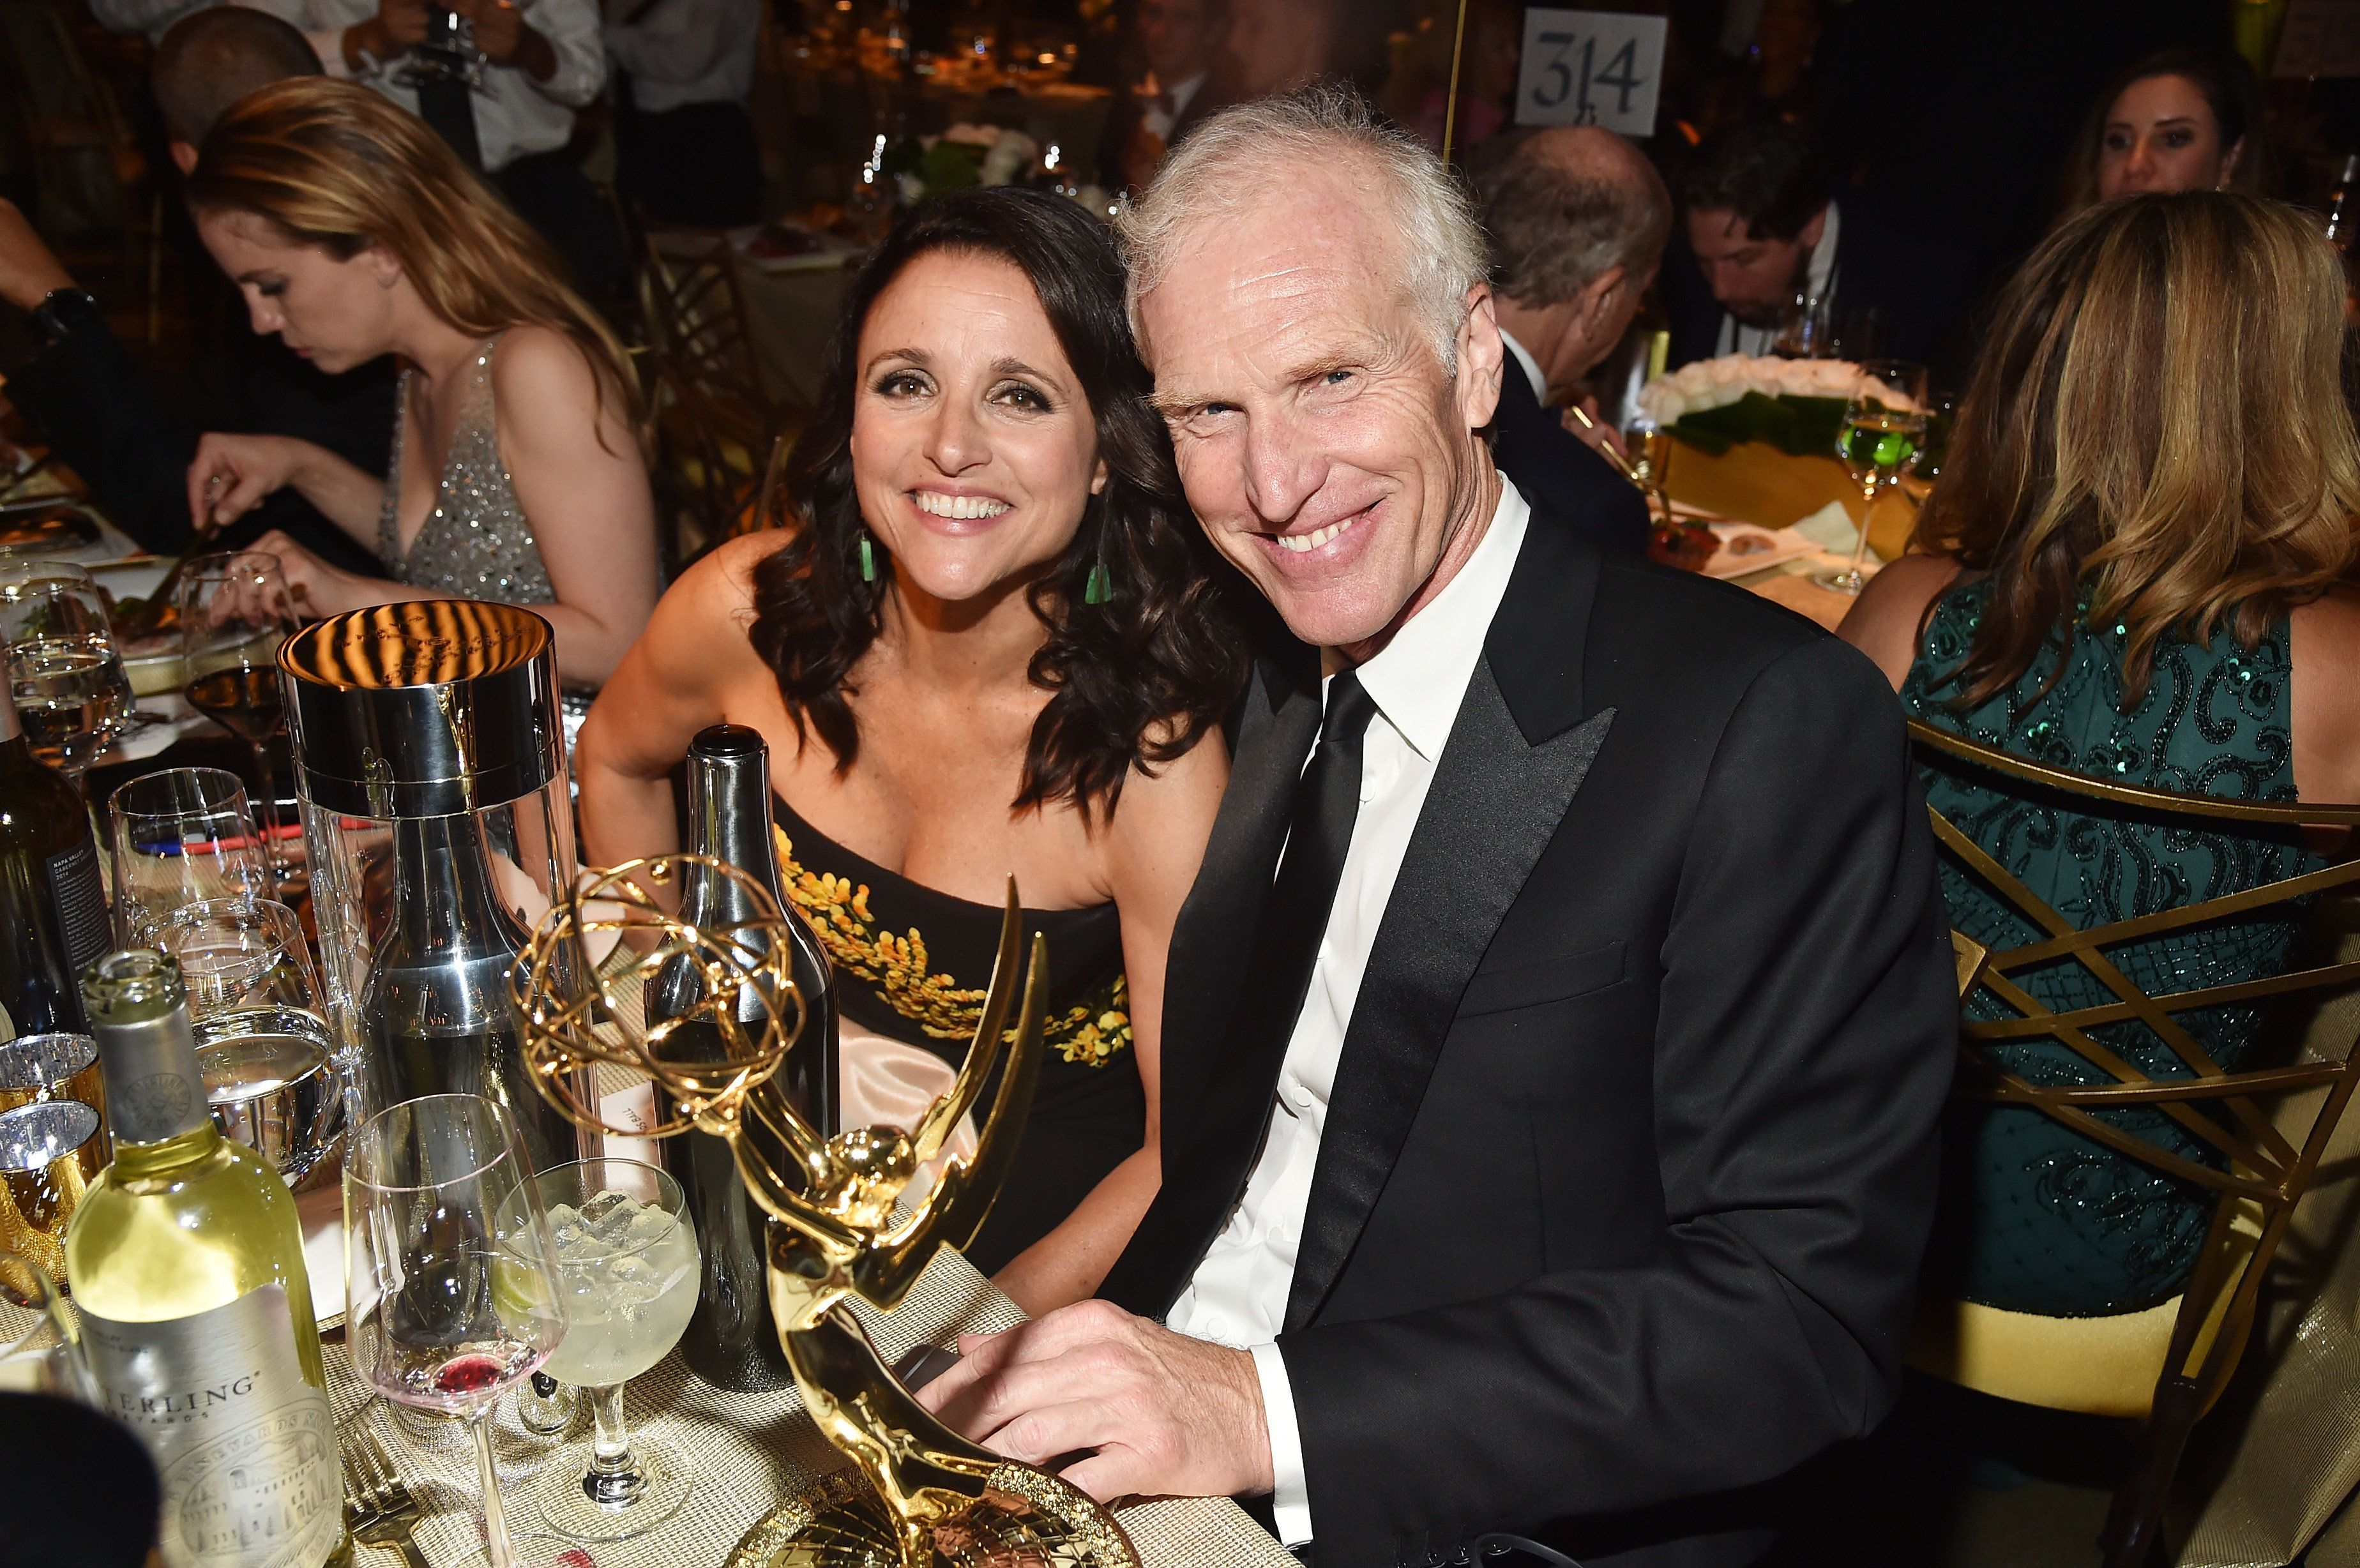 LOS ANGELES, CA - SEPTEMBER 17:  Actor Julia Louis-Dreyfus, winner of the awards for Outstanding Comedy Series and Outstanding Lead Actress in a Comedy Series for 'Veep,' and Brad Hall attends the 69th Annual Primetime Emmy Awards Governors Ball on September 17, 2017 in Los Angeles, California.  (Photo by Alberto E. Rodriguez/Getty Images)